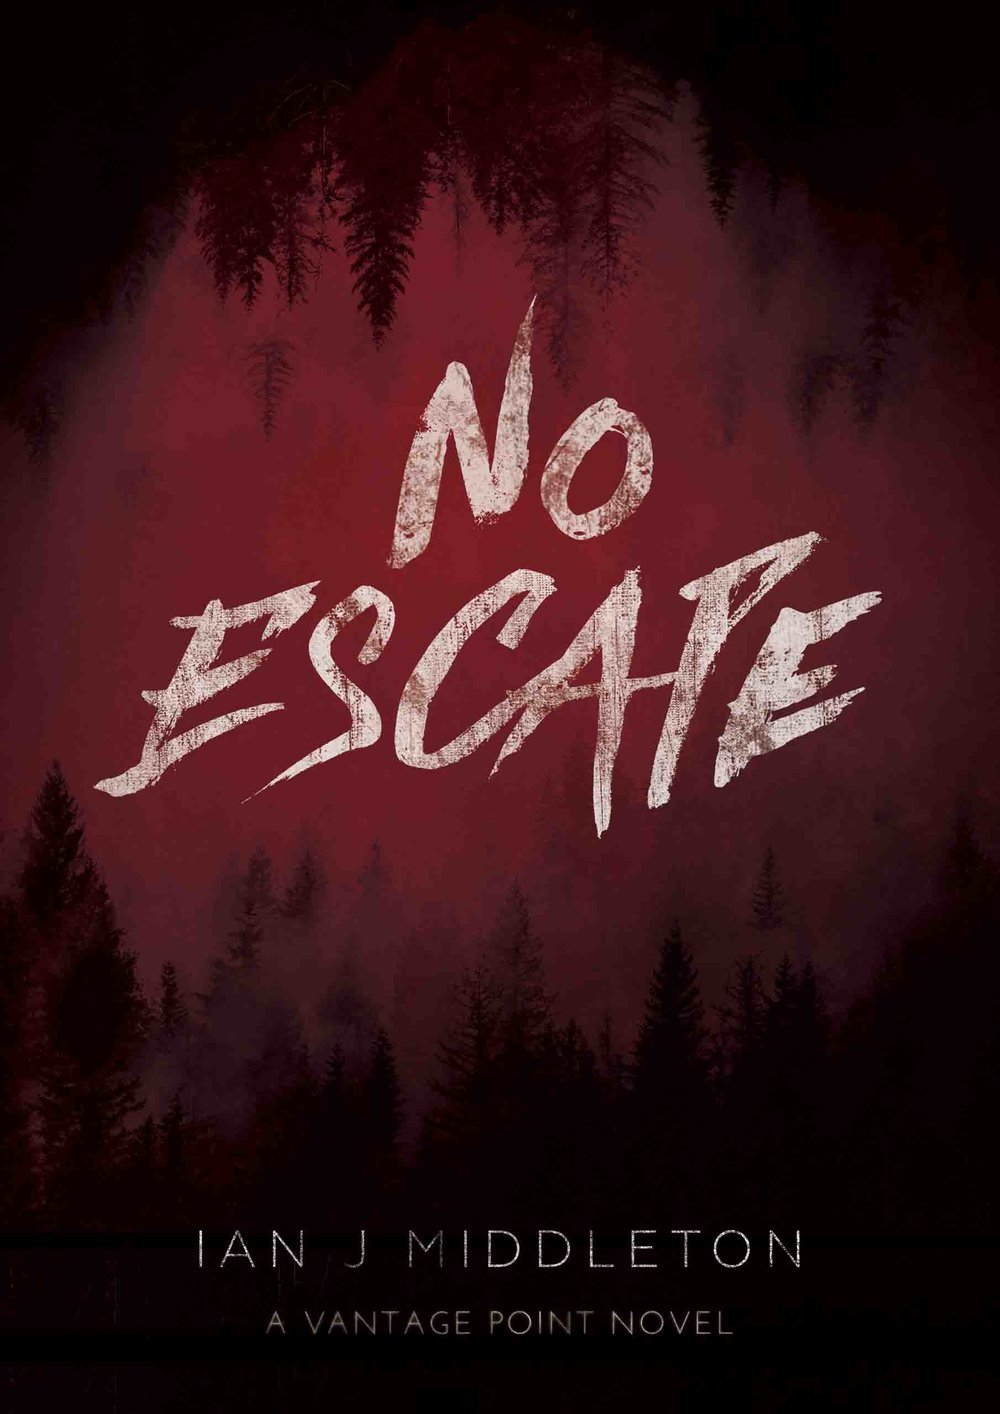 No Escape - An unstable leader, three vulnerable teenagers, and a merciless forest.John moved to Vantage Point hoping for a fresh start. He had a new job, a new volunteer position with the local youth group 'The Young Adventurers', and a new place to call home. However, New Zealand is a small place, and news travels fast.When a weekend trip away with three members of The Young Adventurers is potentially cancelled, an opportunity arises for John to prove to himself, and the inhabitants of Vantage Point, that he's a changed man. But deep within the mysterious West Coast forest, a series of unfortunate events results in the group fighting for survival, forcing them to come to the unsettling realisation that sanctuary can be a curse, and fear is always close.Part 1 of the series, No Escape draws on inspiration from the stunning New Zealand scenery, Kiwi culture and the unforgiving wilderness to create a gripping and unsettling first installment into the dark world of Vantage Point – the small town that isn't known for its happy endings.